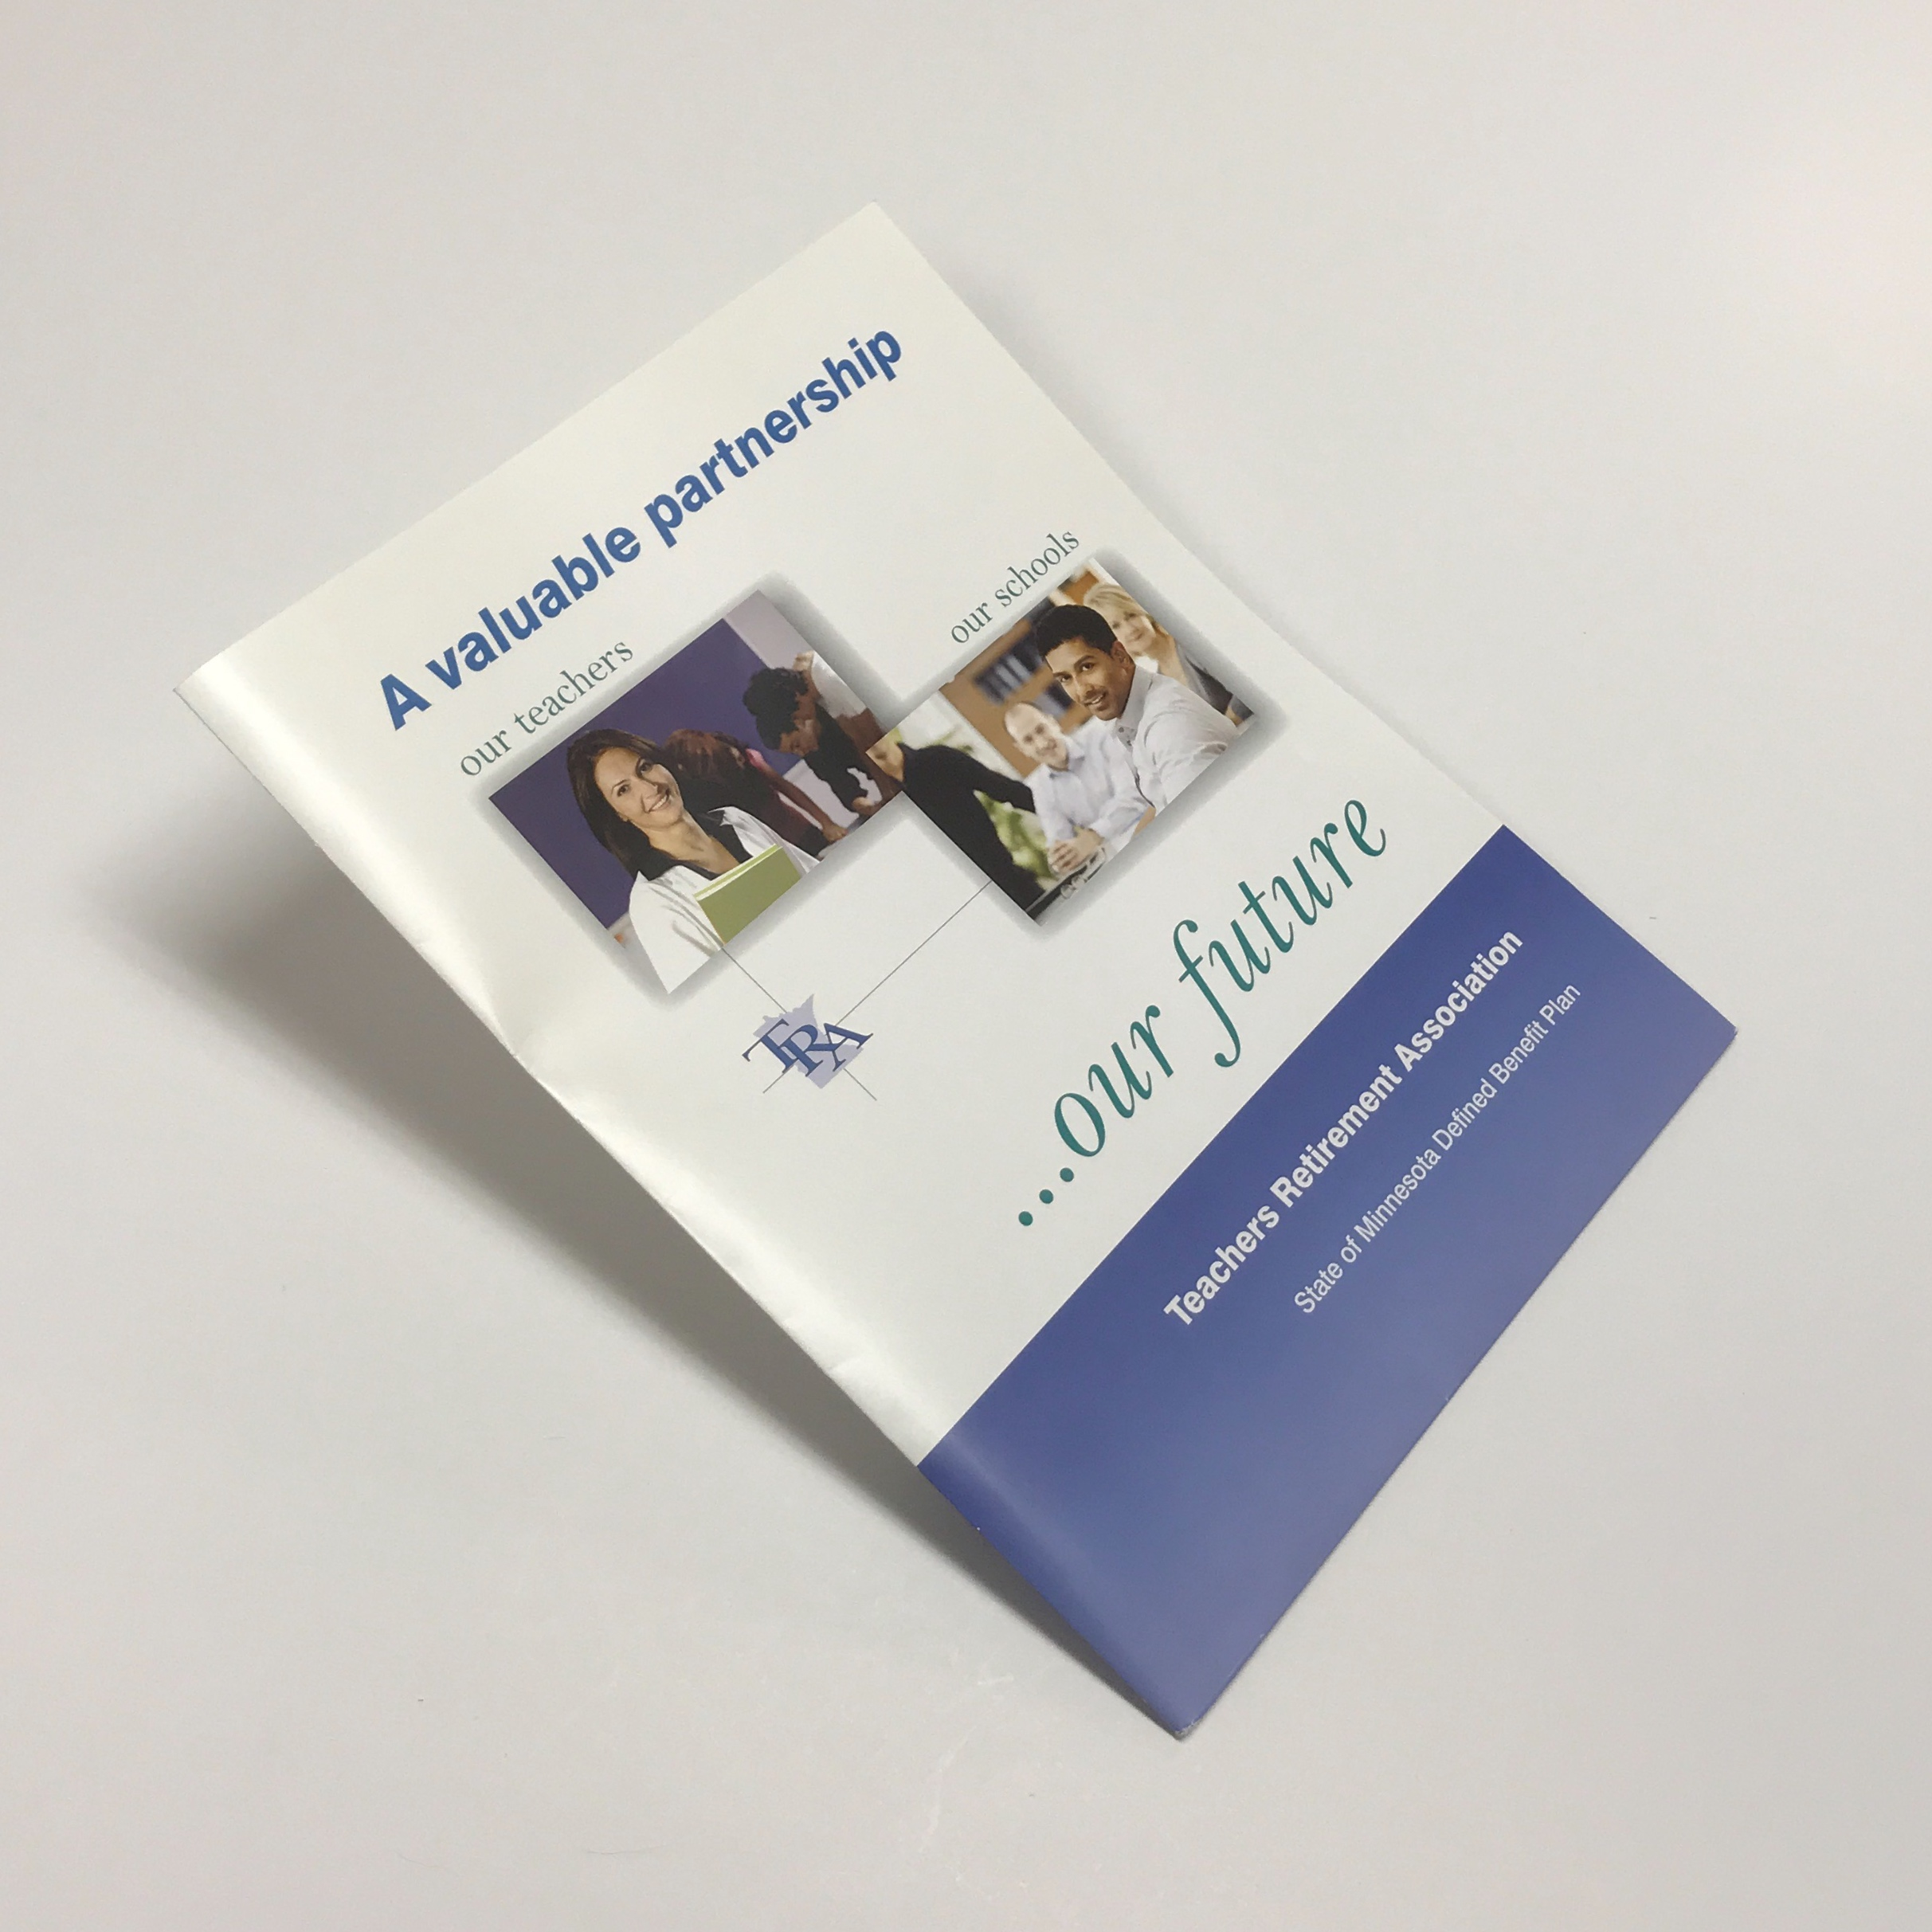 High quality booklet folder used for corporate use printed in Minnesota